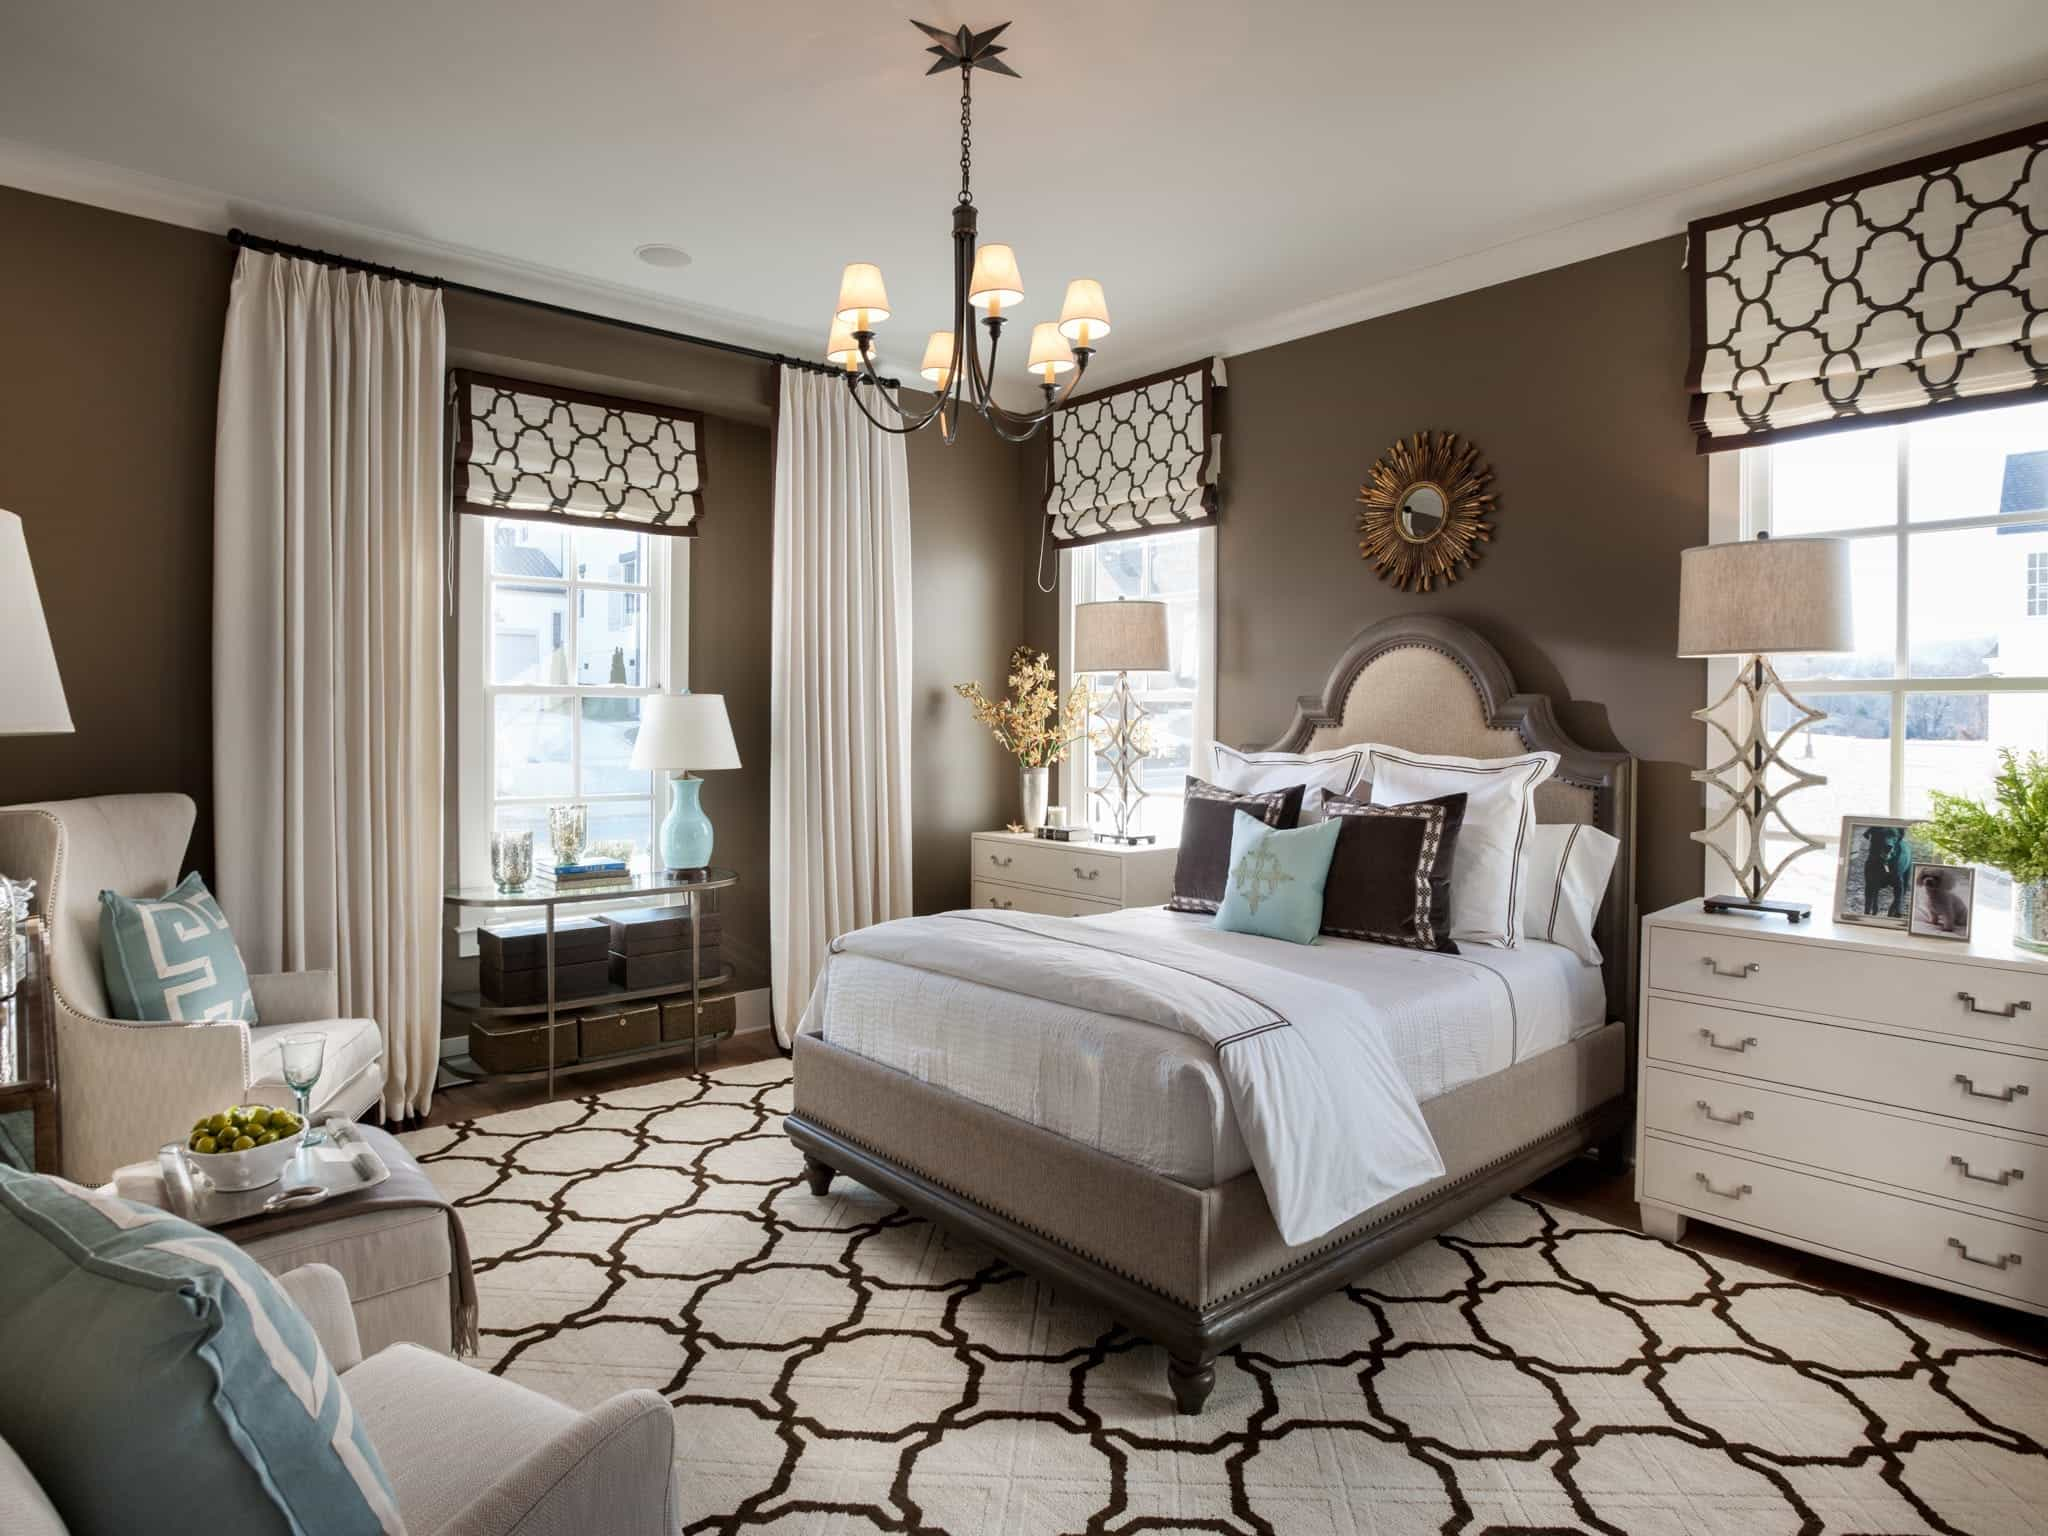 Transitional Style Bedroom In Brown With Carpet Flooring (Image 26 of 28)